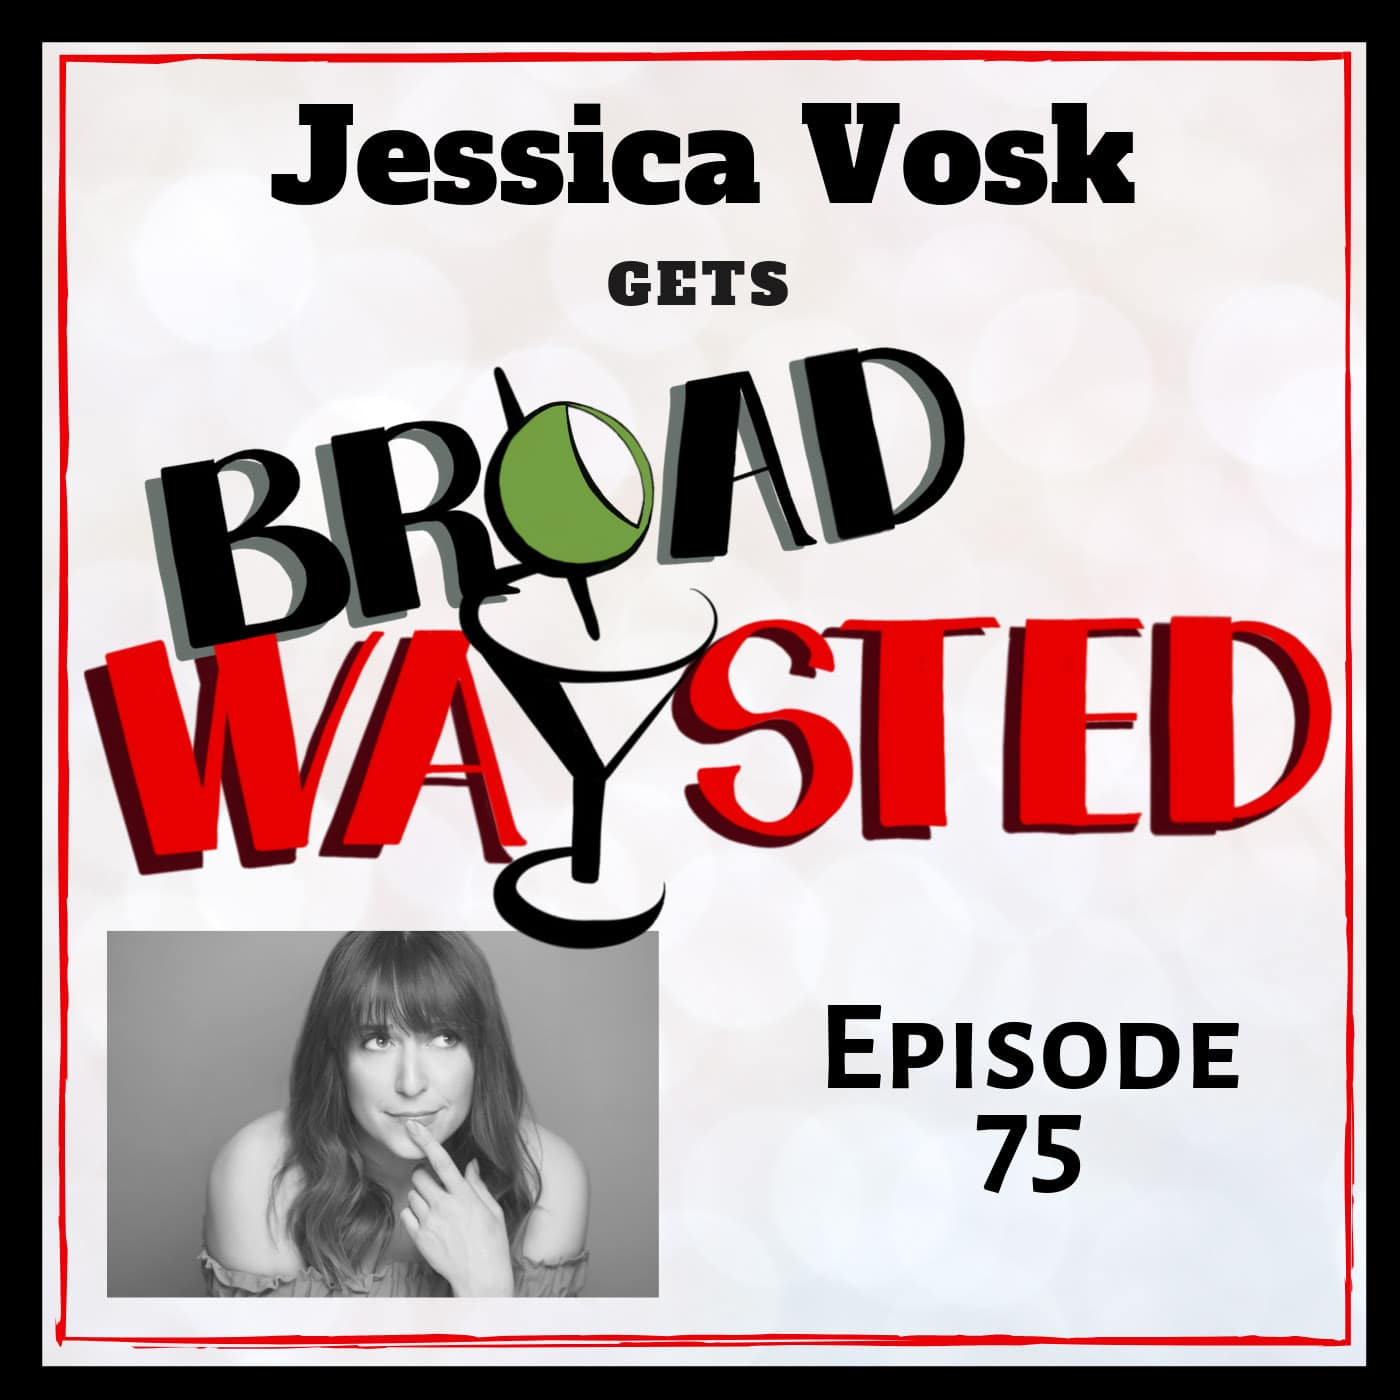 Broadwaysted Ep 75 Jessica Vosk